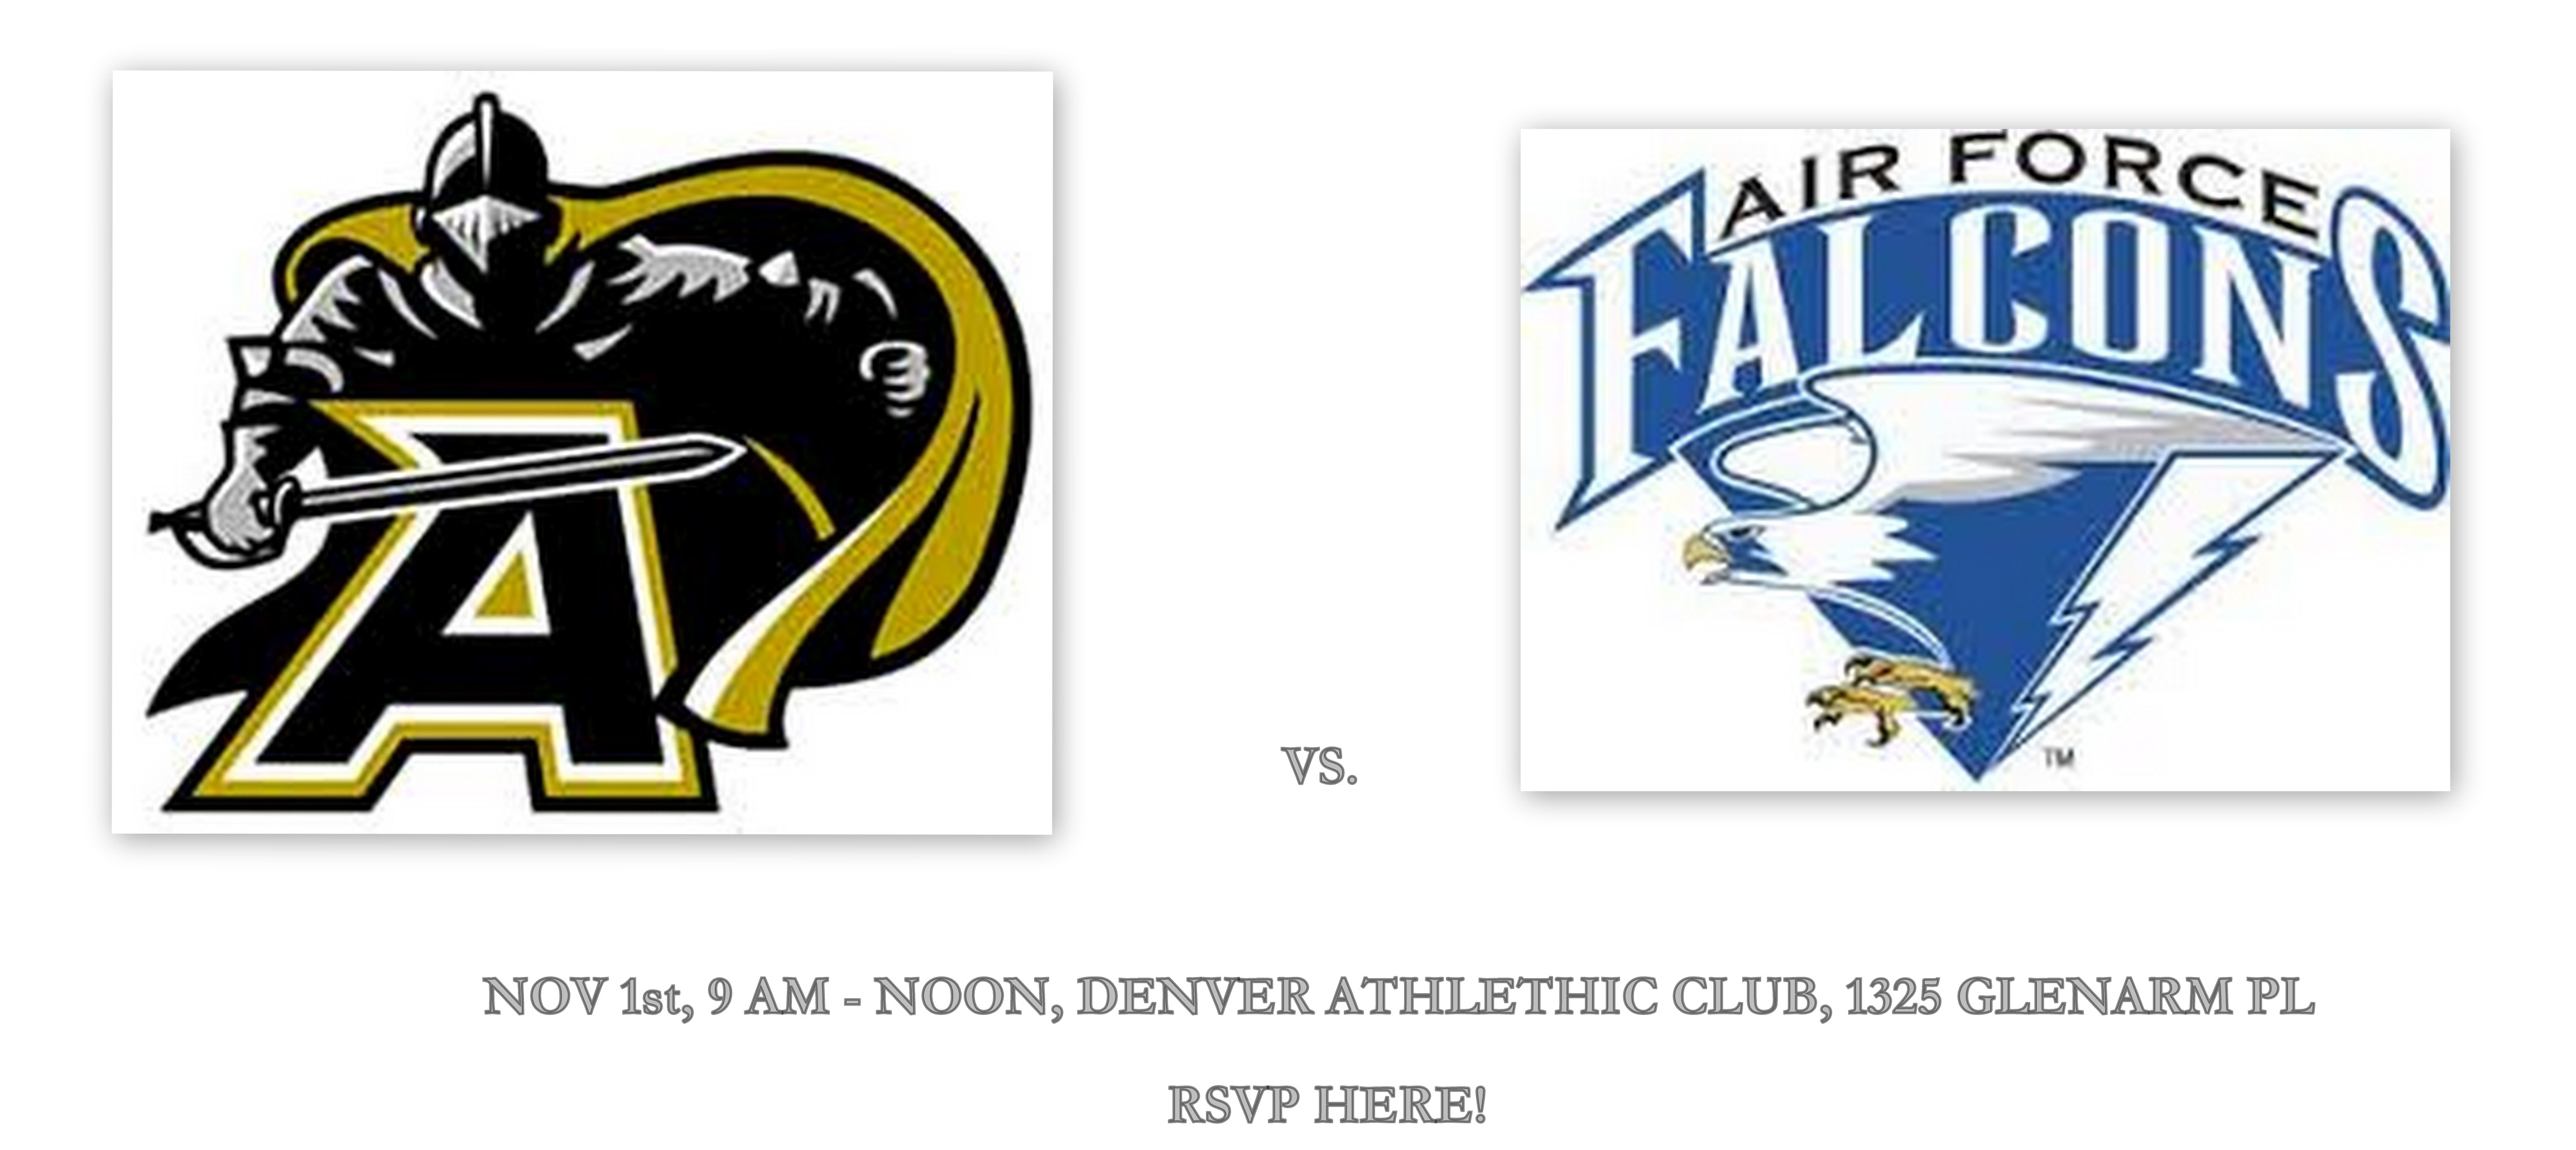 Army vs Air Force